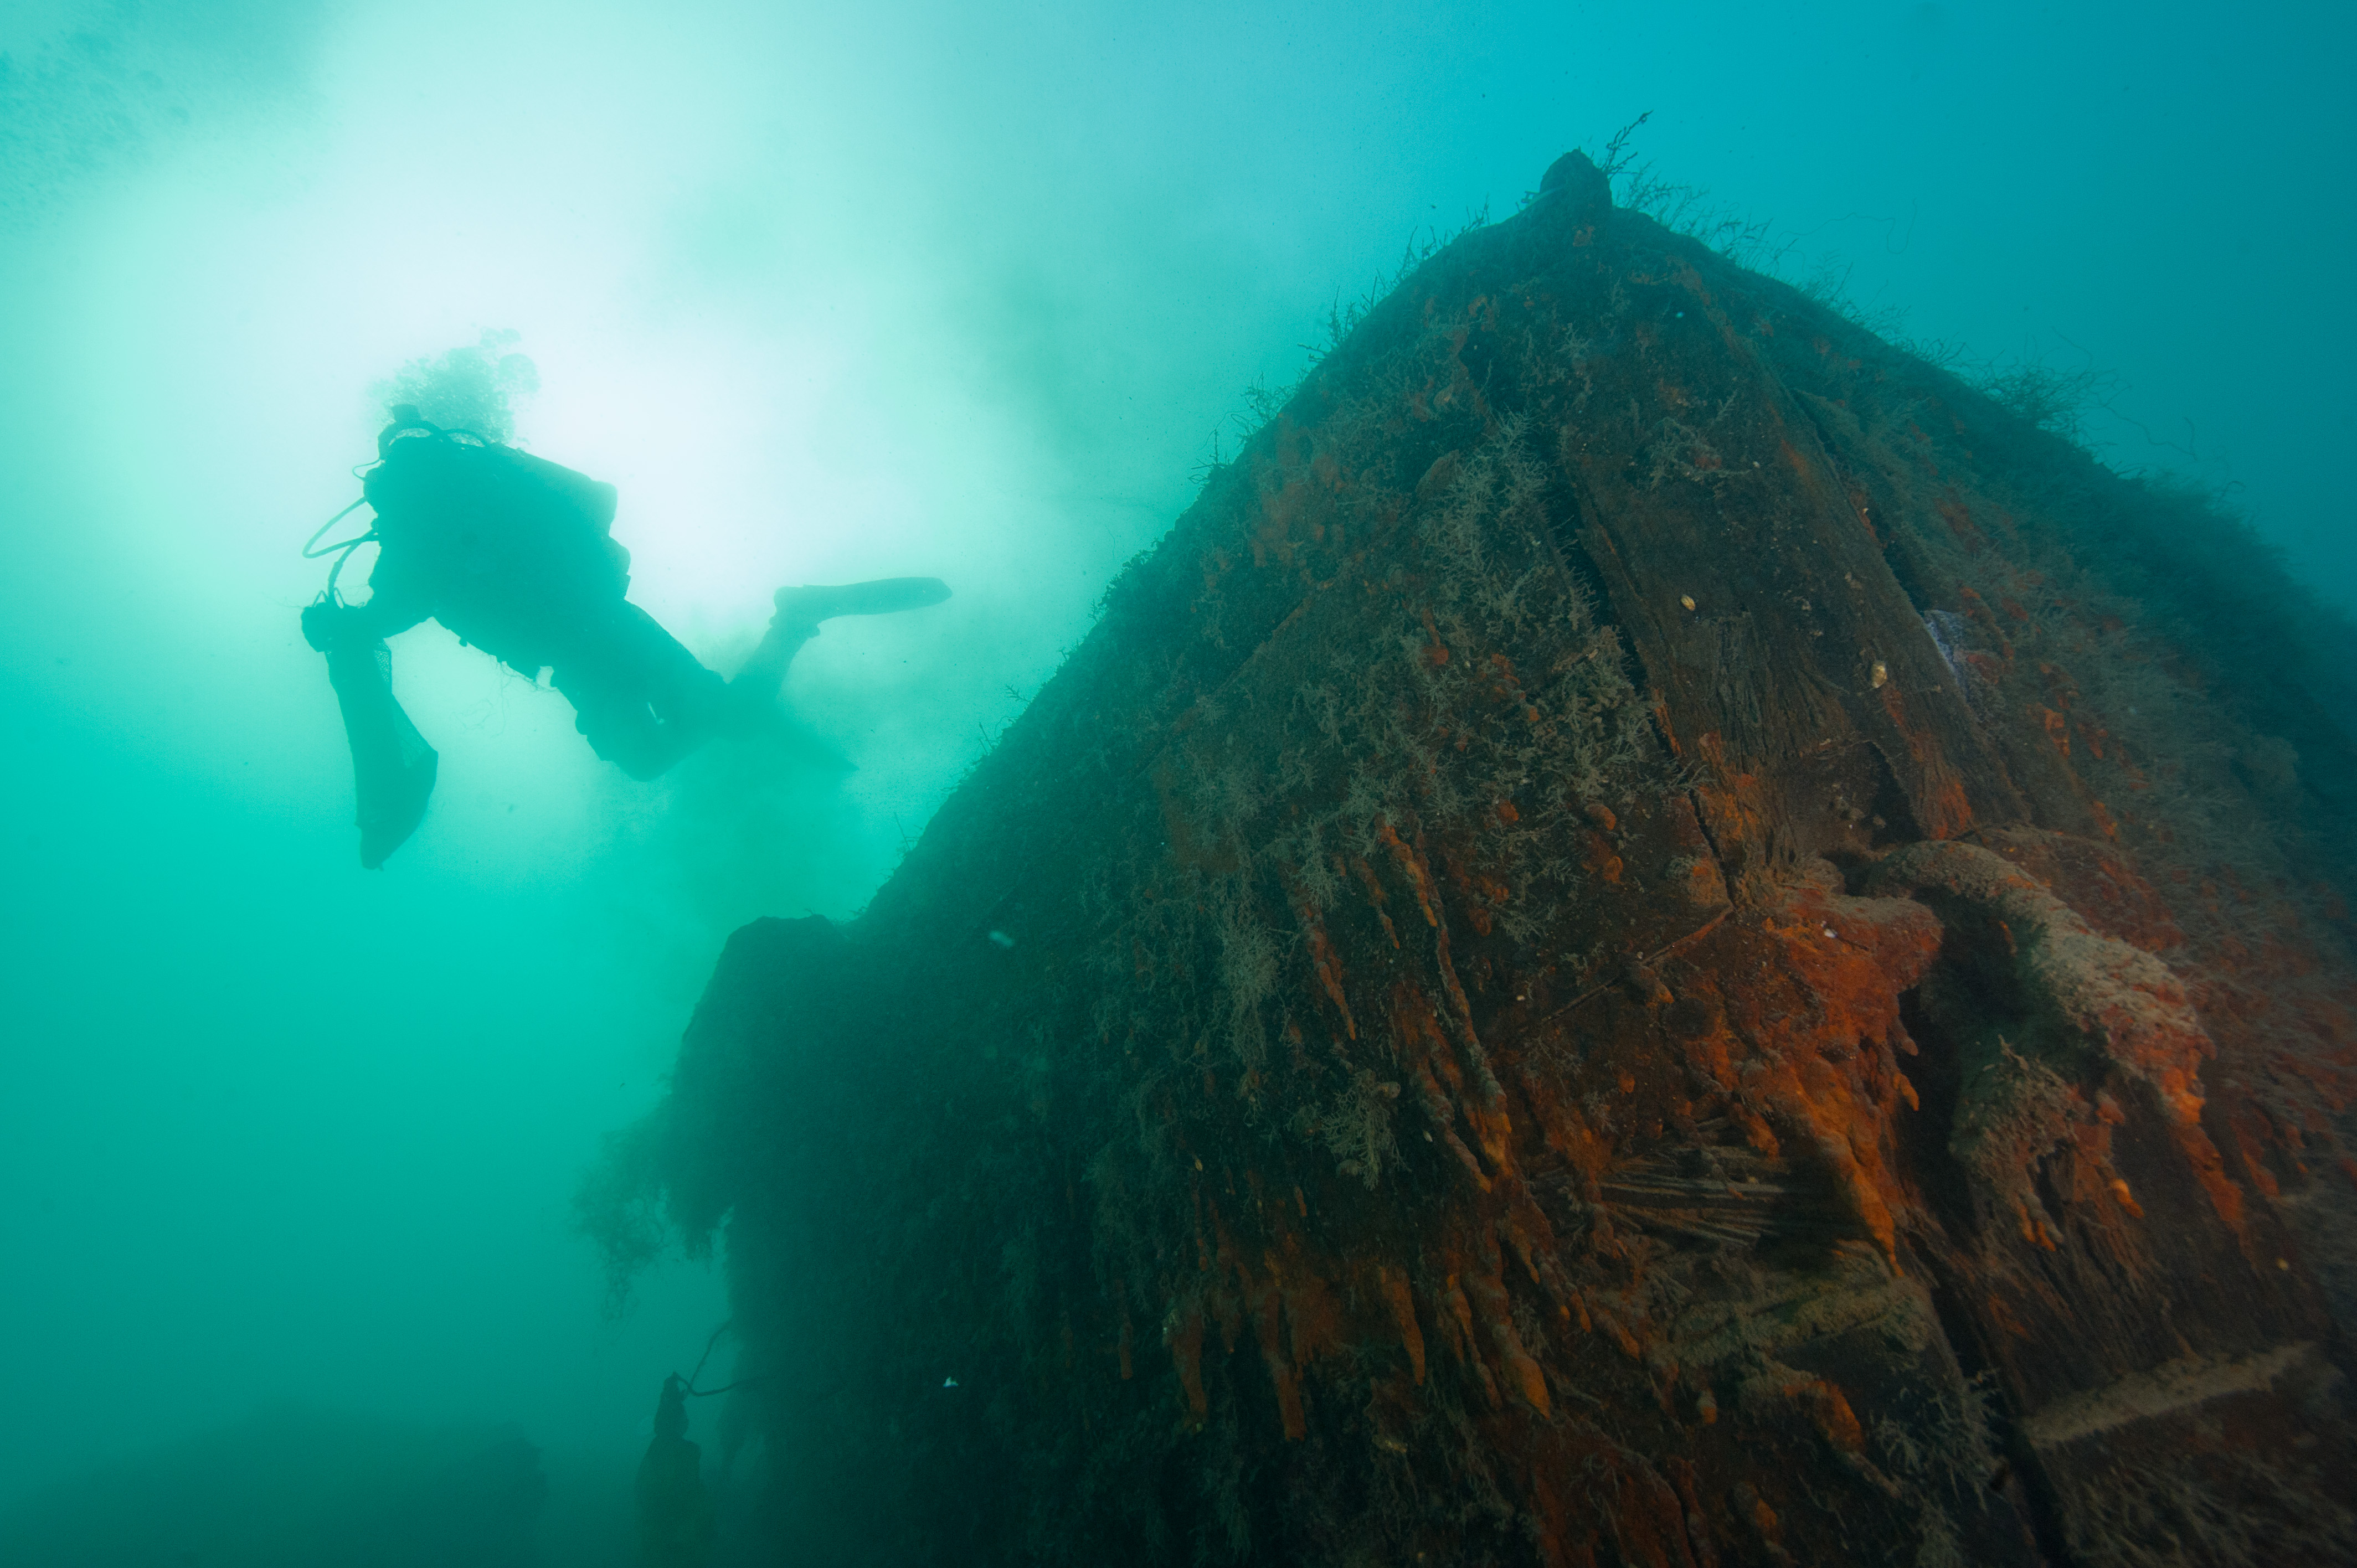 Ryan Harris swimming over the bow of HMS Investigator. Copyright: Parks Canada, Brett Seymour, NPS